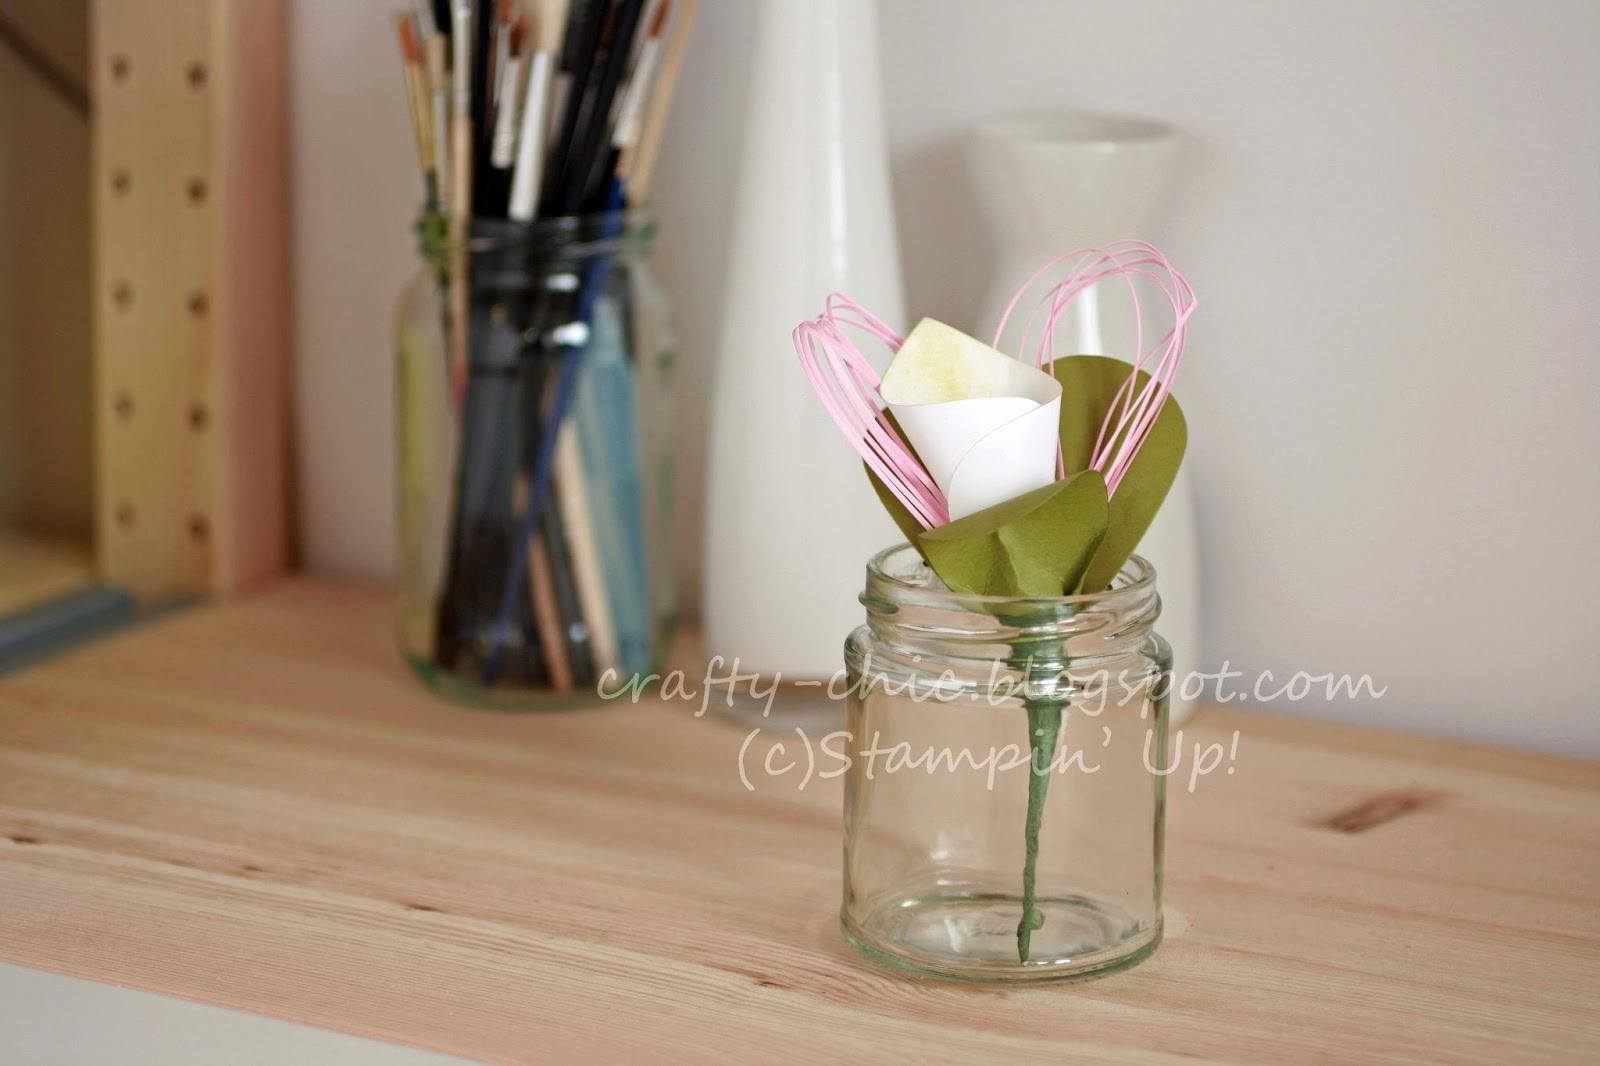 A picture of a paper lily in a glass jar